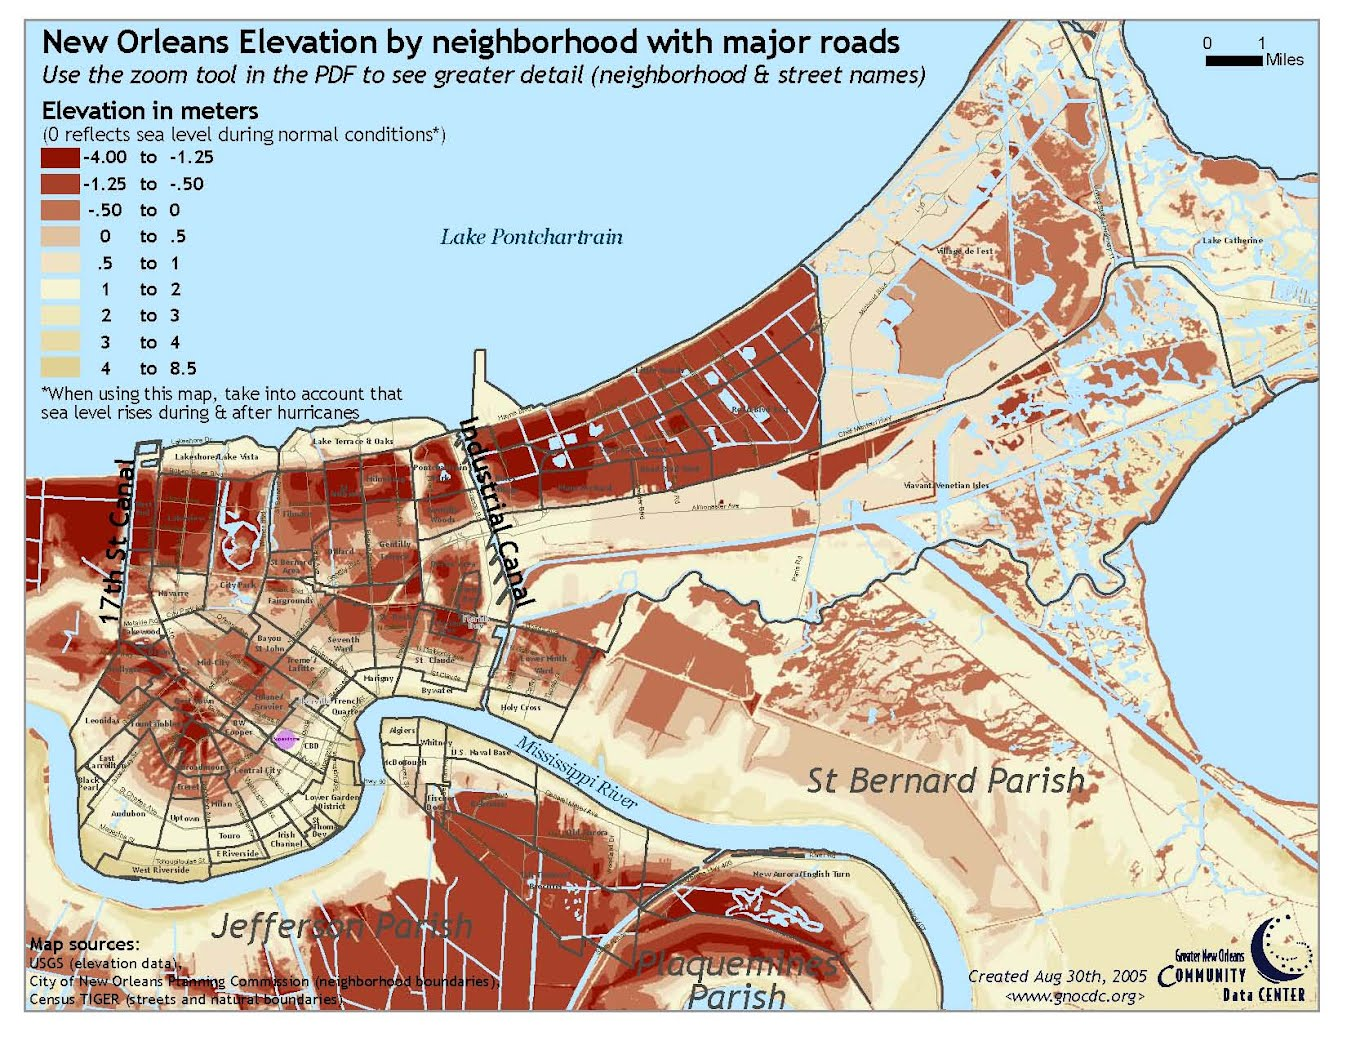 Hurricane Katrina New Orleans Map.Physiography Topography Characterizing Hurricane Katrina And New